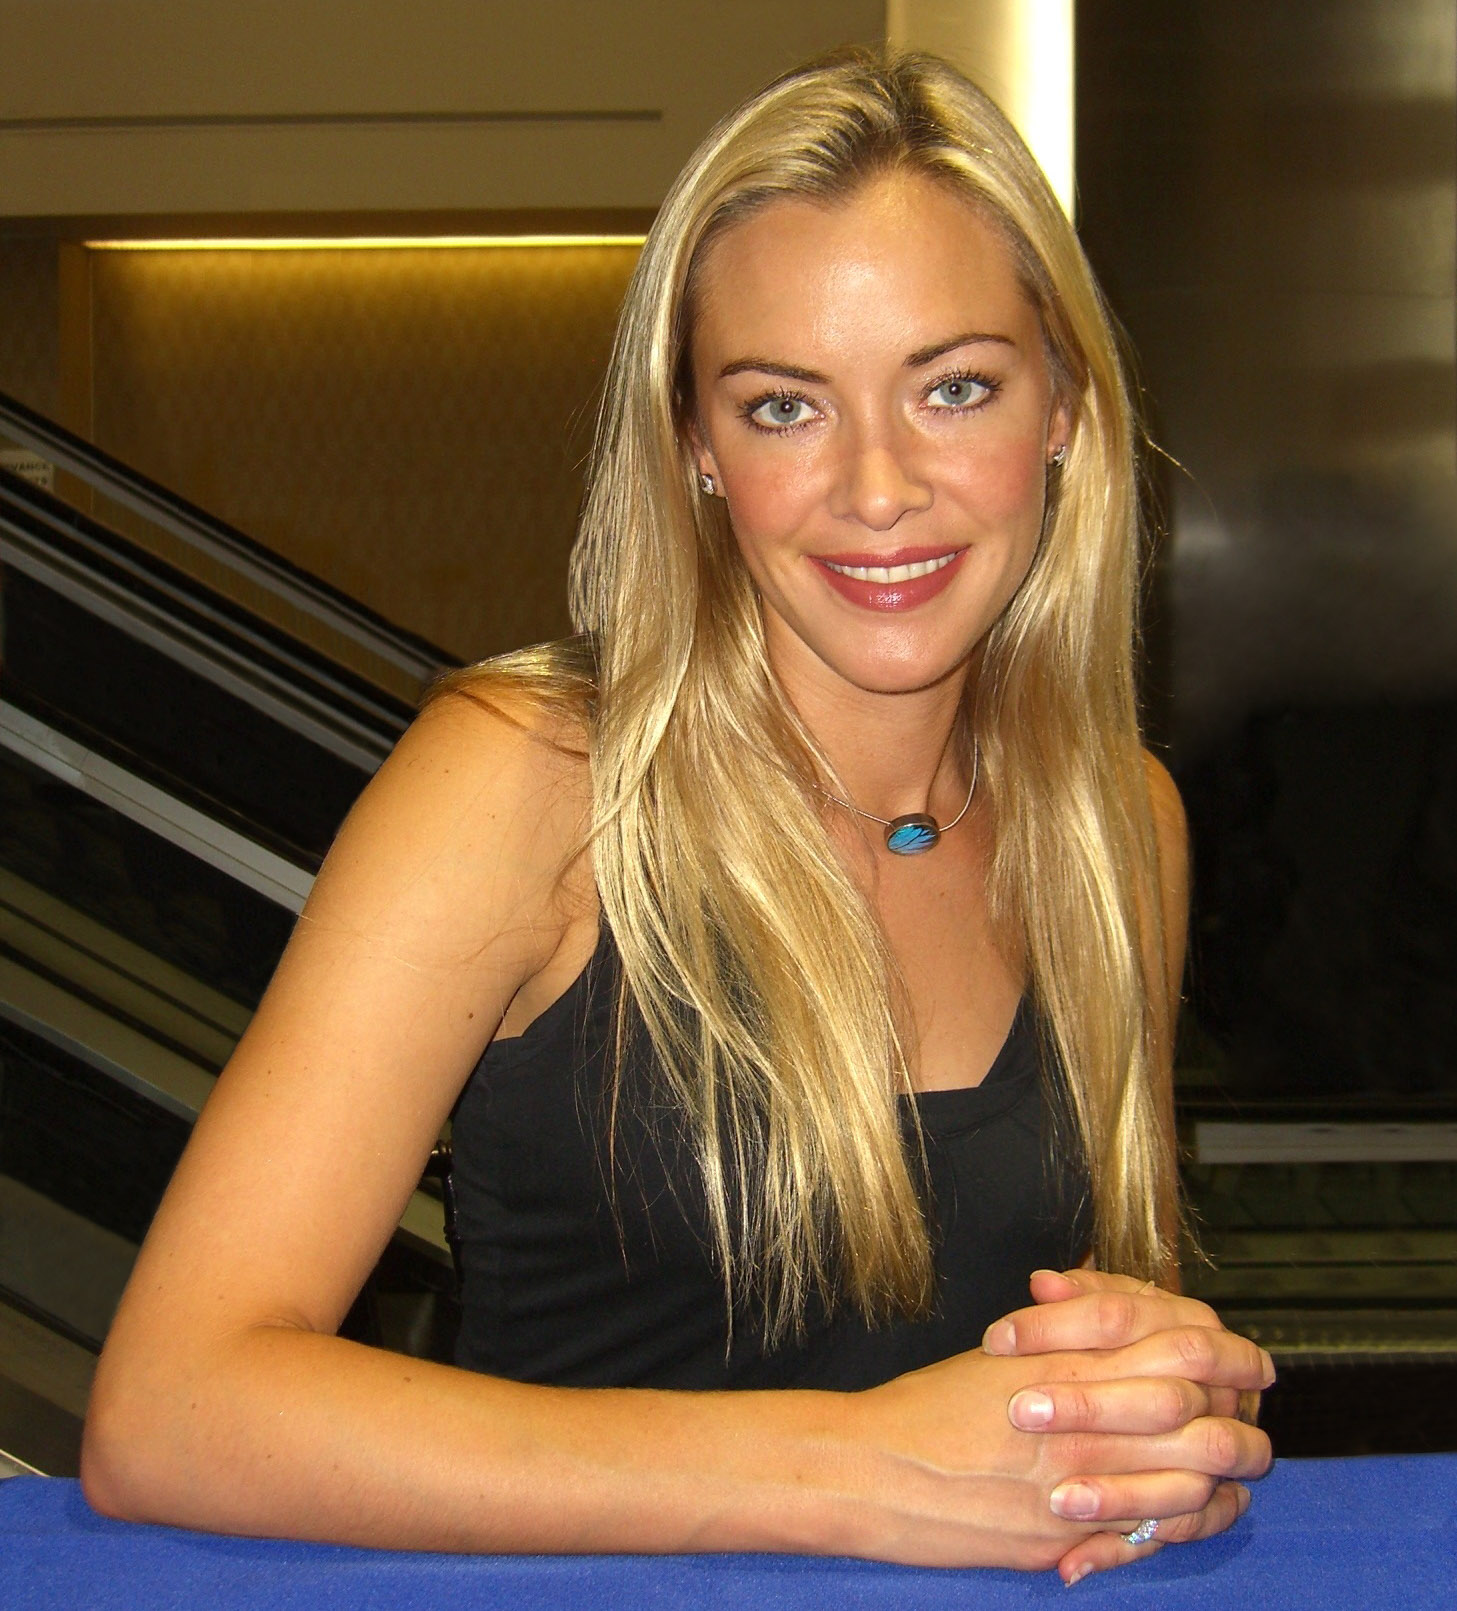 Kristanna Loken career